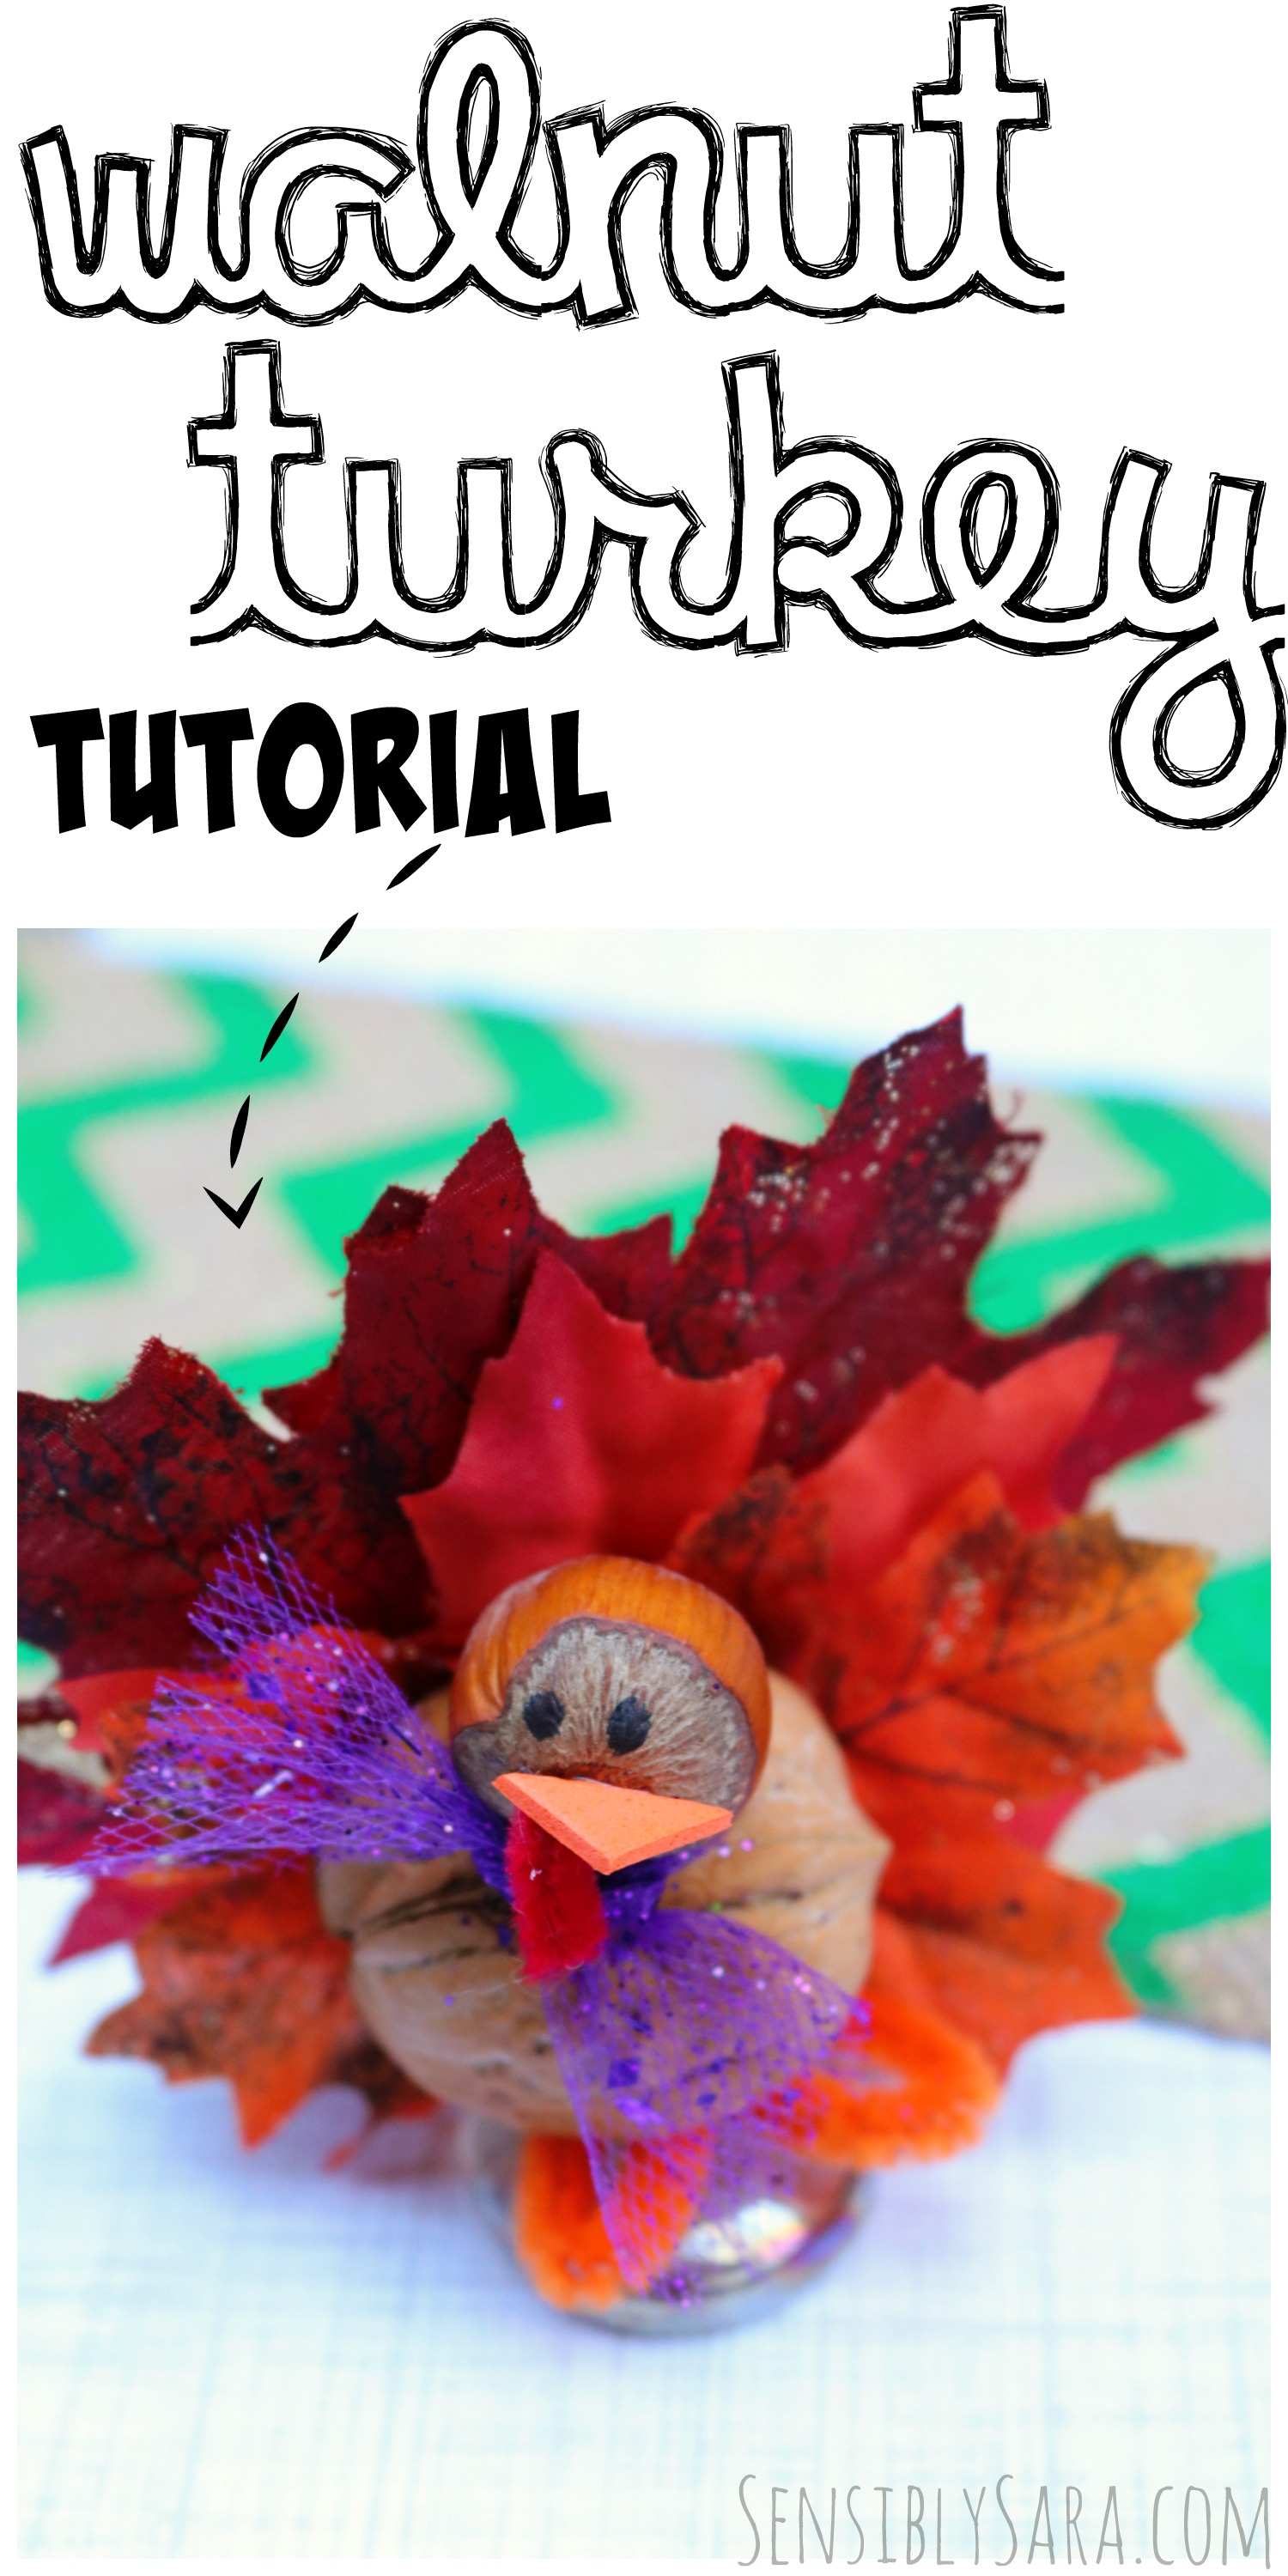 Walnut Turkey Tutorial - Easy Fall Craft for Thanksgiving | SensiblySara.com